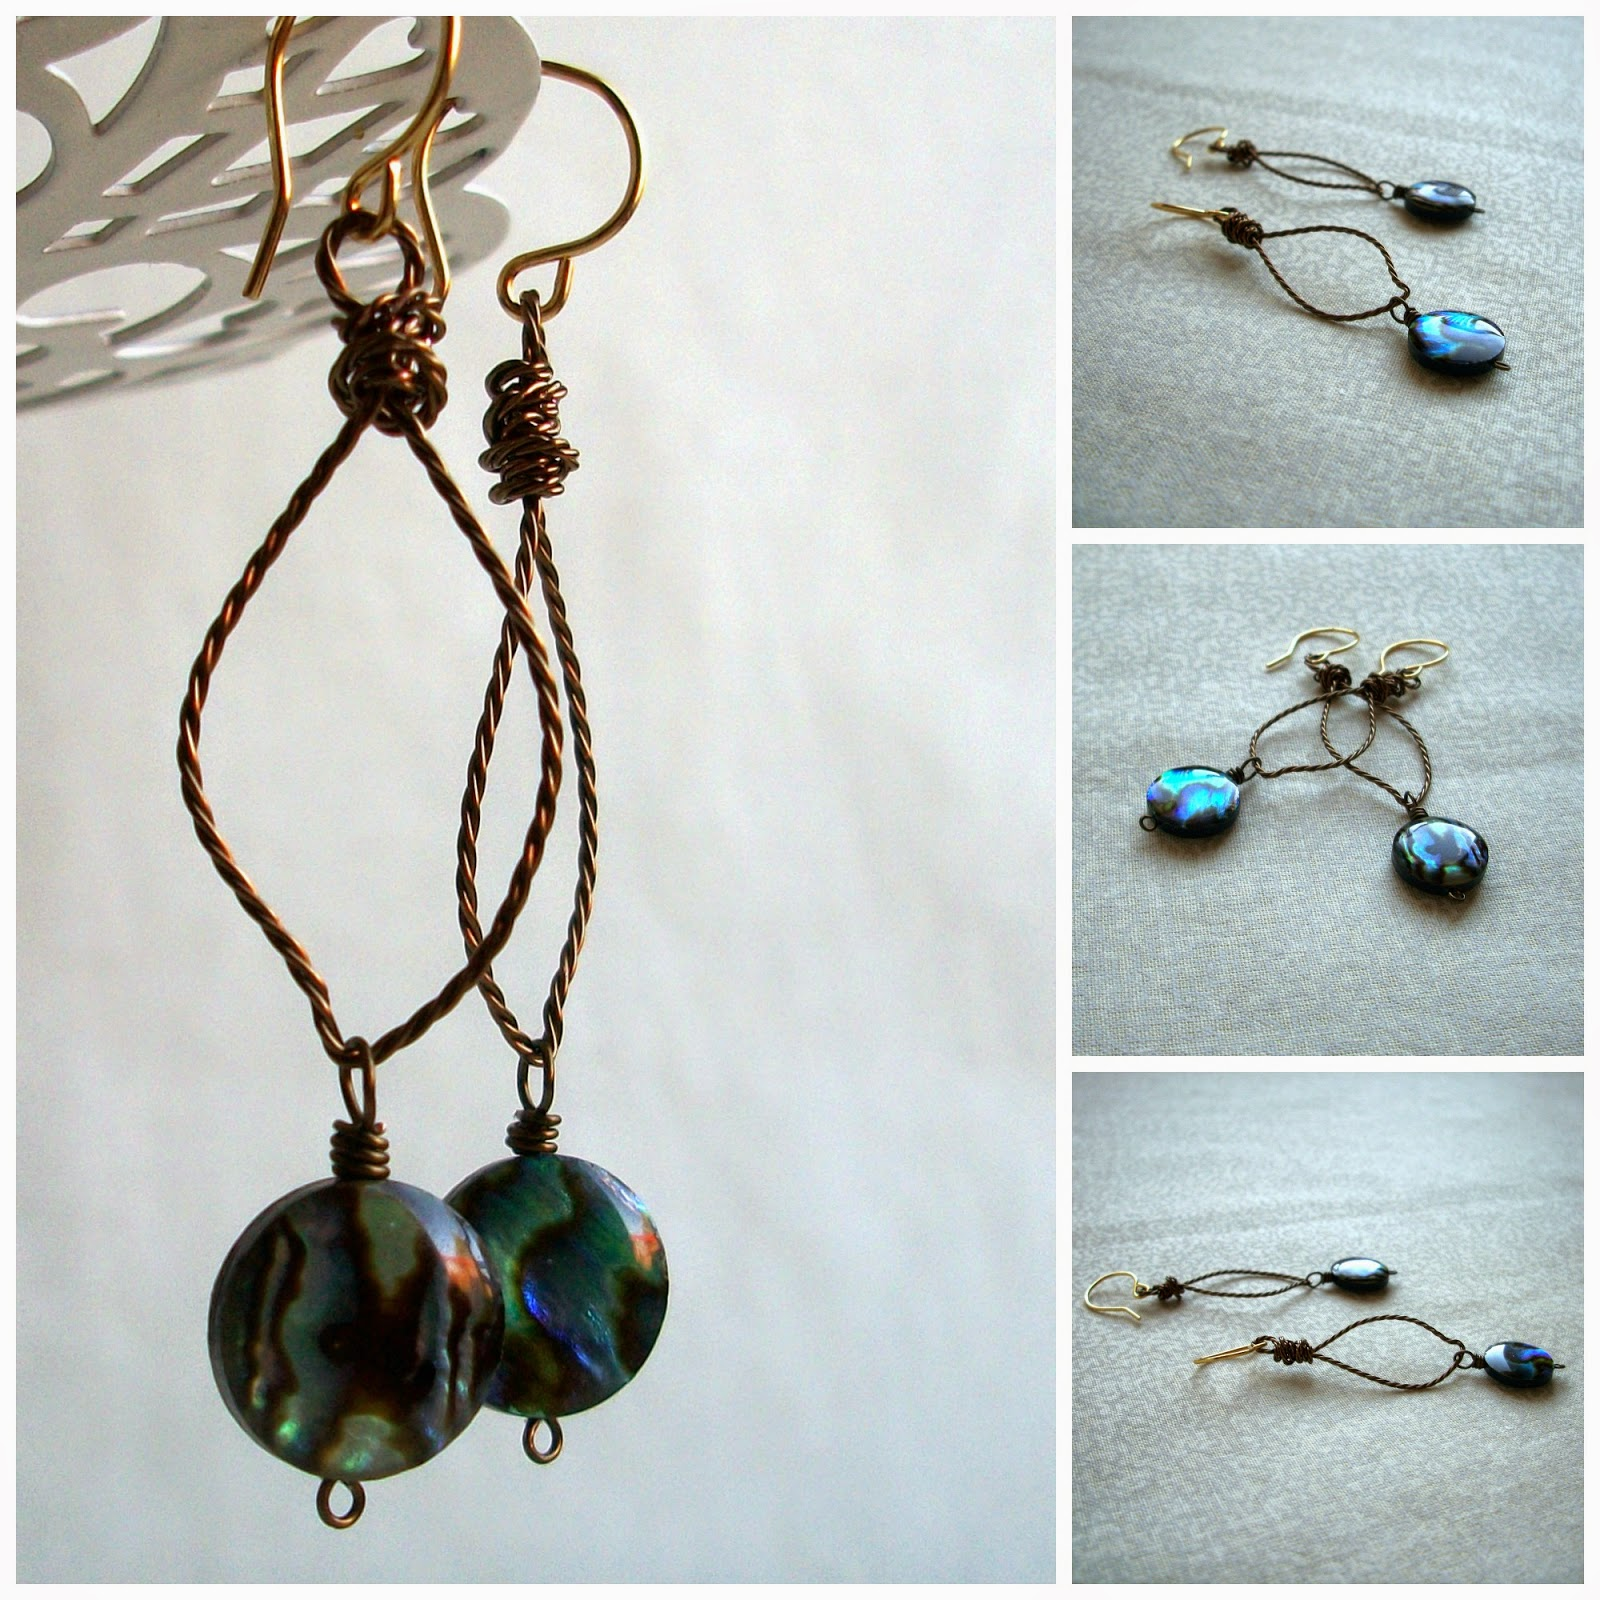 Flower Petal Earrings with Abalone Shell Dangles